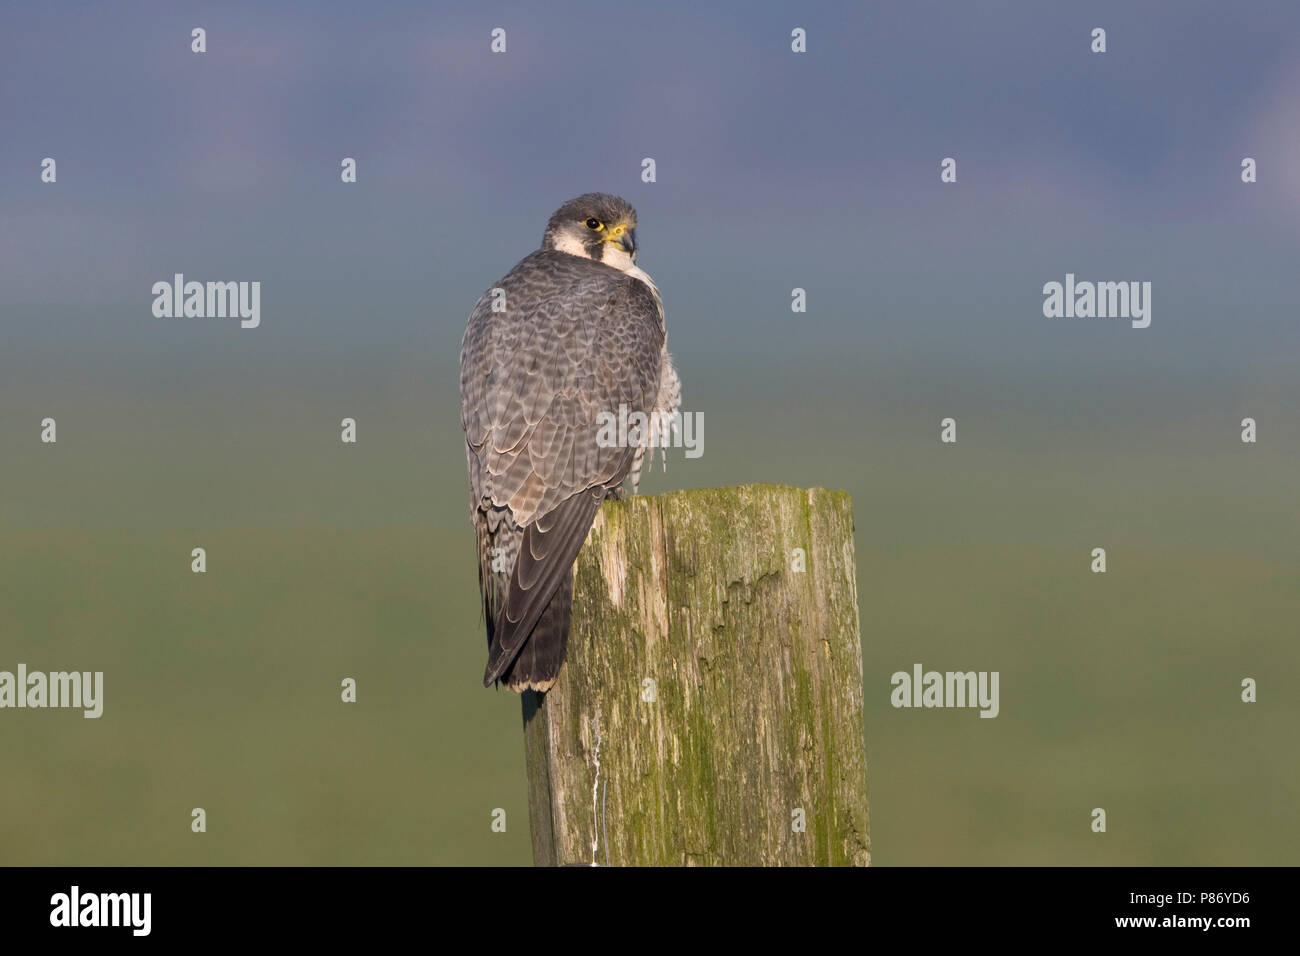 Slechtvalk rustend ; Peregrine Falcon on a stake-out - Stock Image